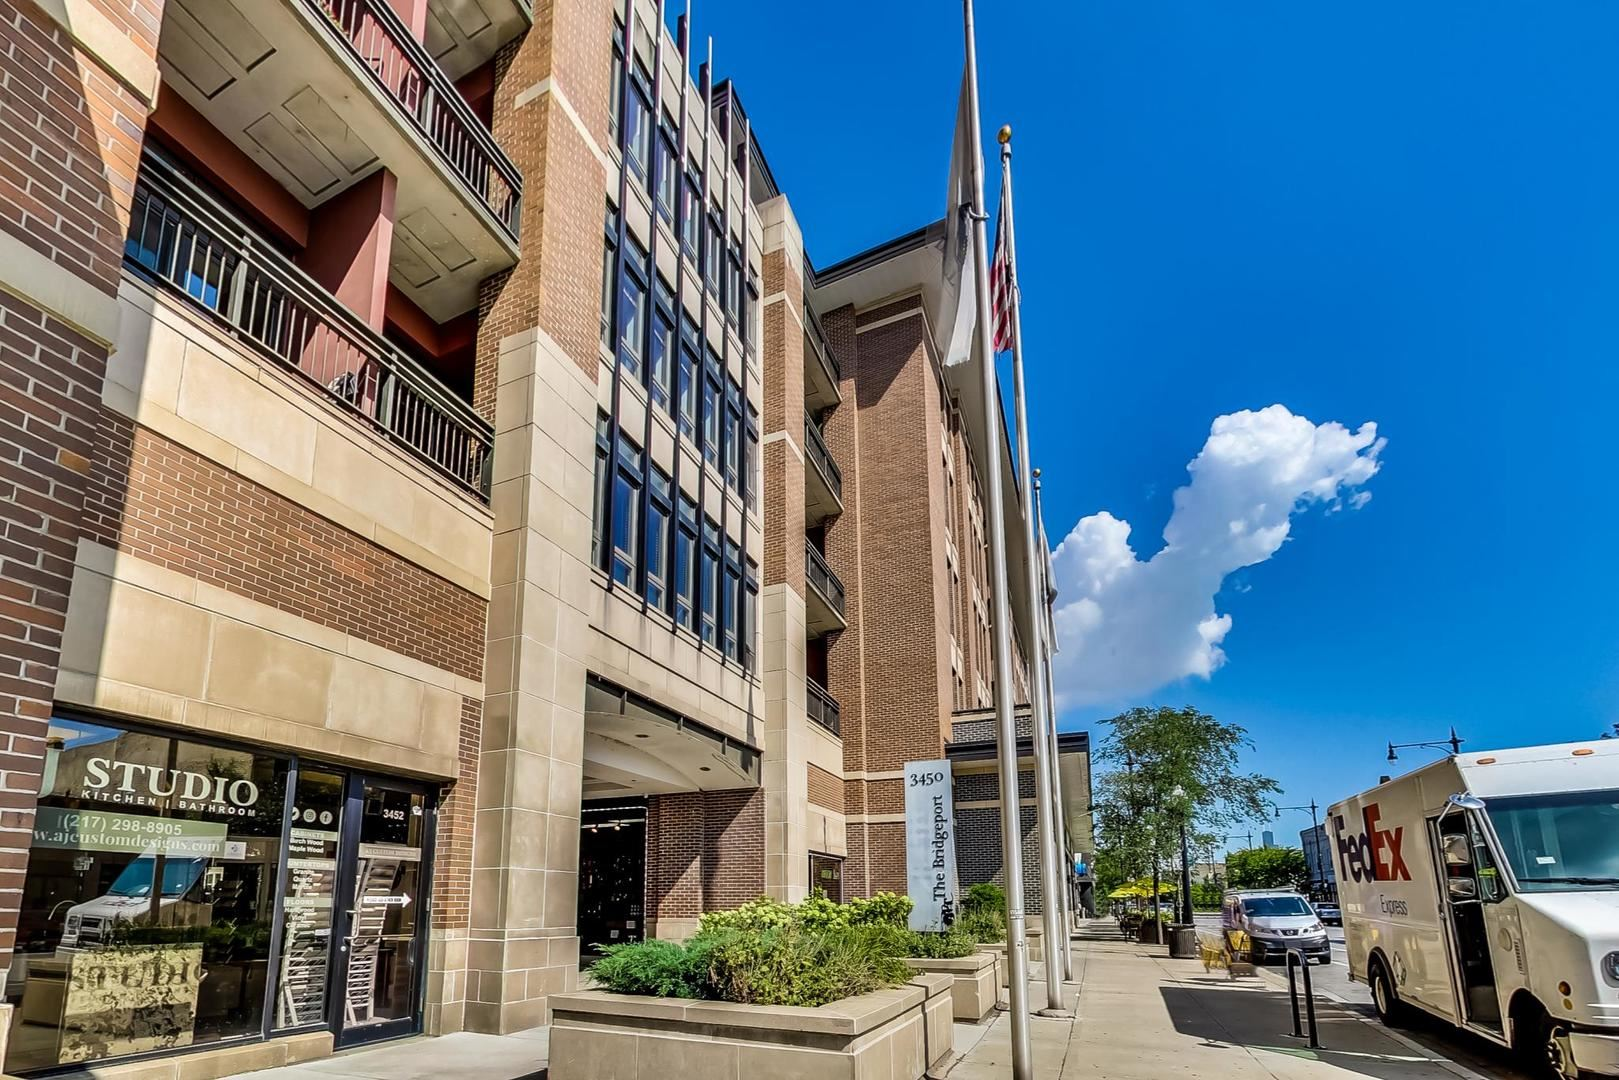 3450 S HALSTED Street #401, Chicago, IL 60608 - #: 10814098